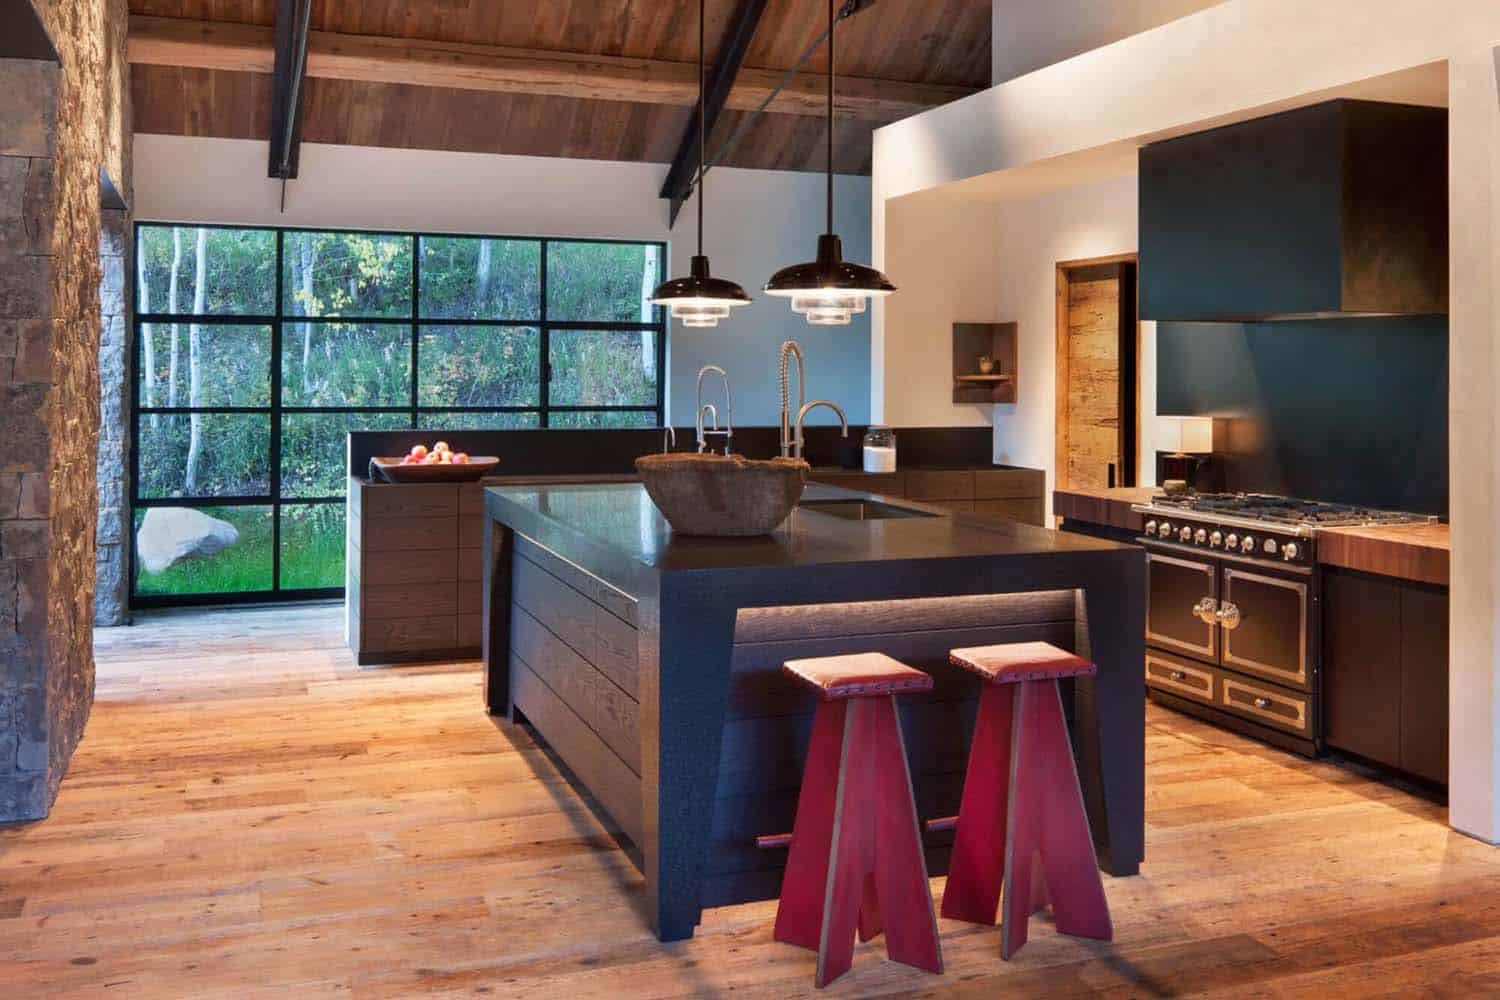 Modern Mountain Home-Miller-Roodell Architects-06-1 Kindesign